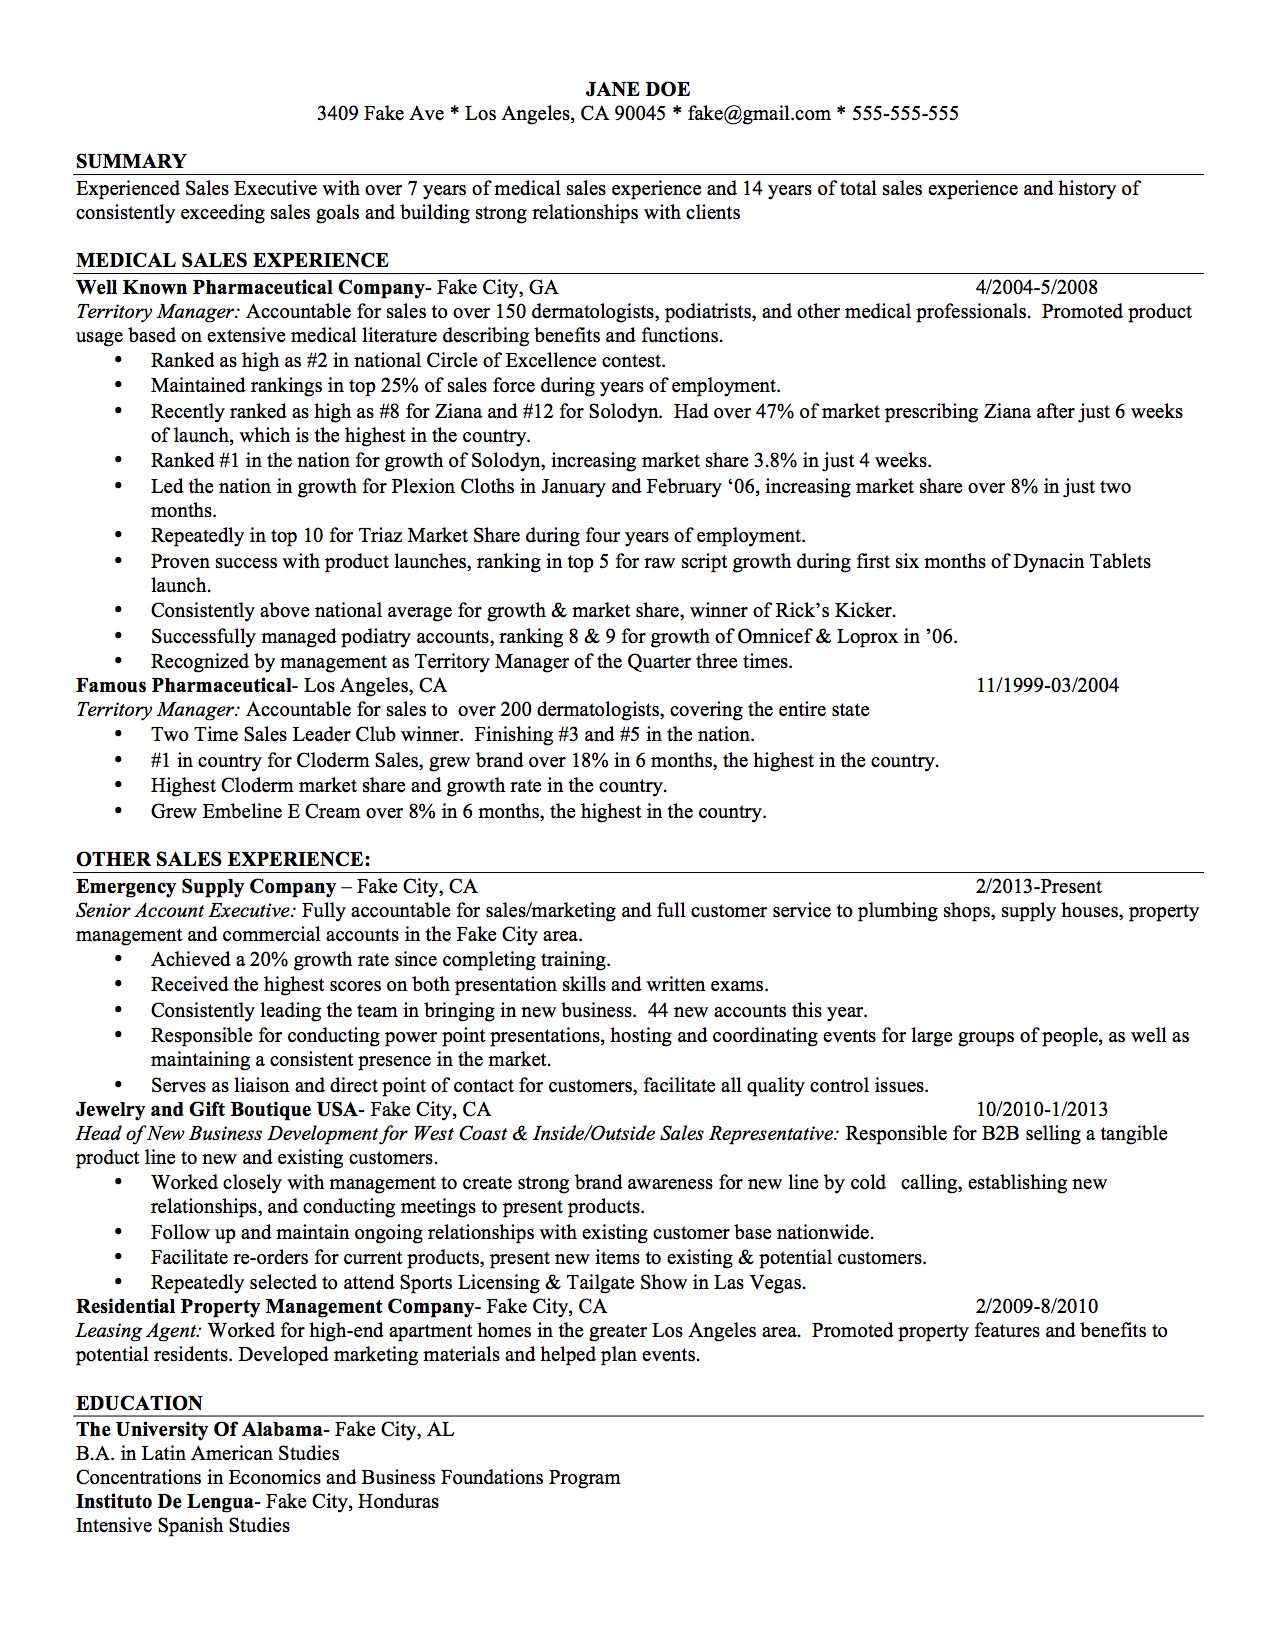 Example Resume For Medical Sales Industry Change